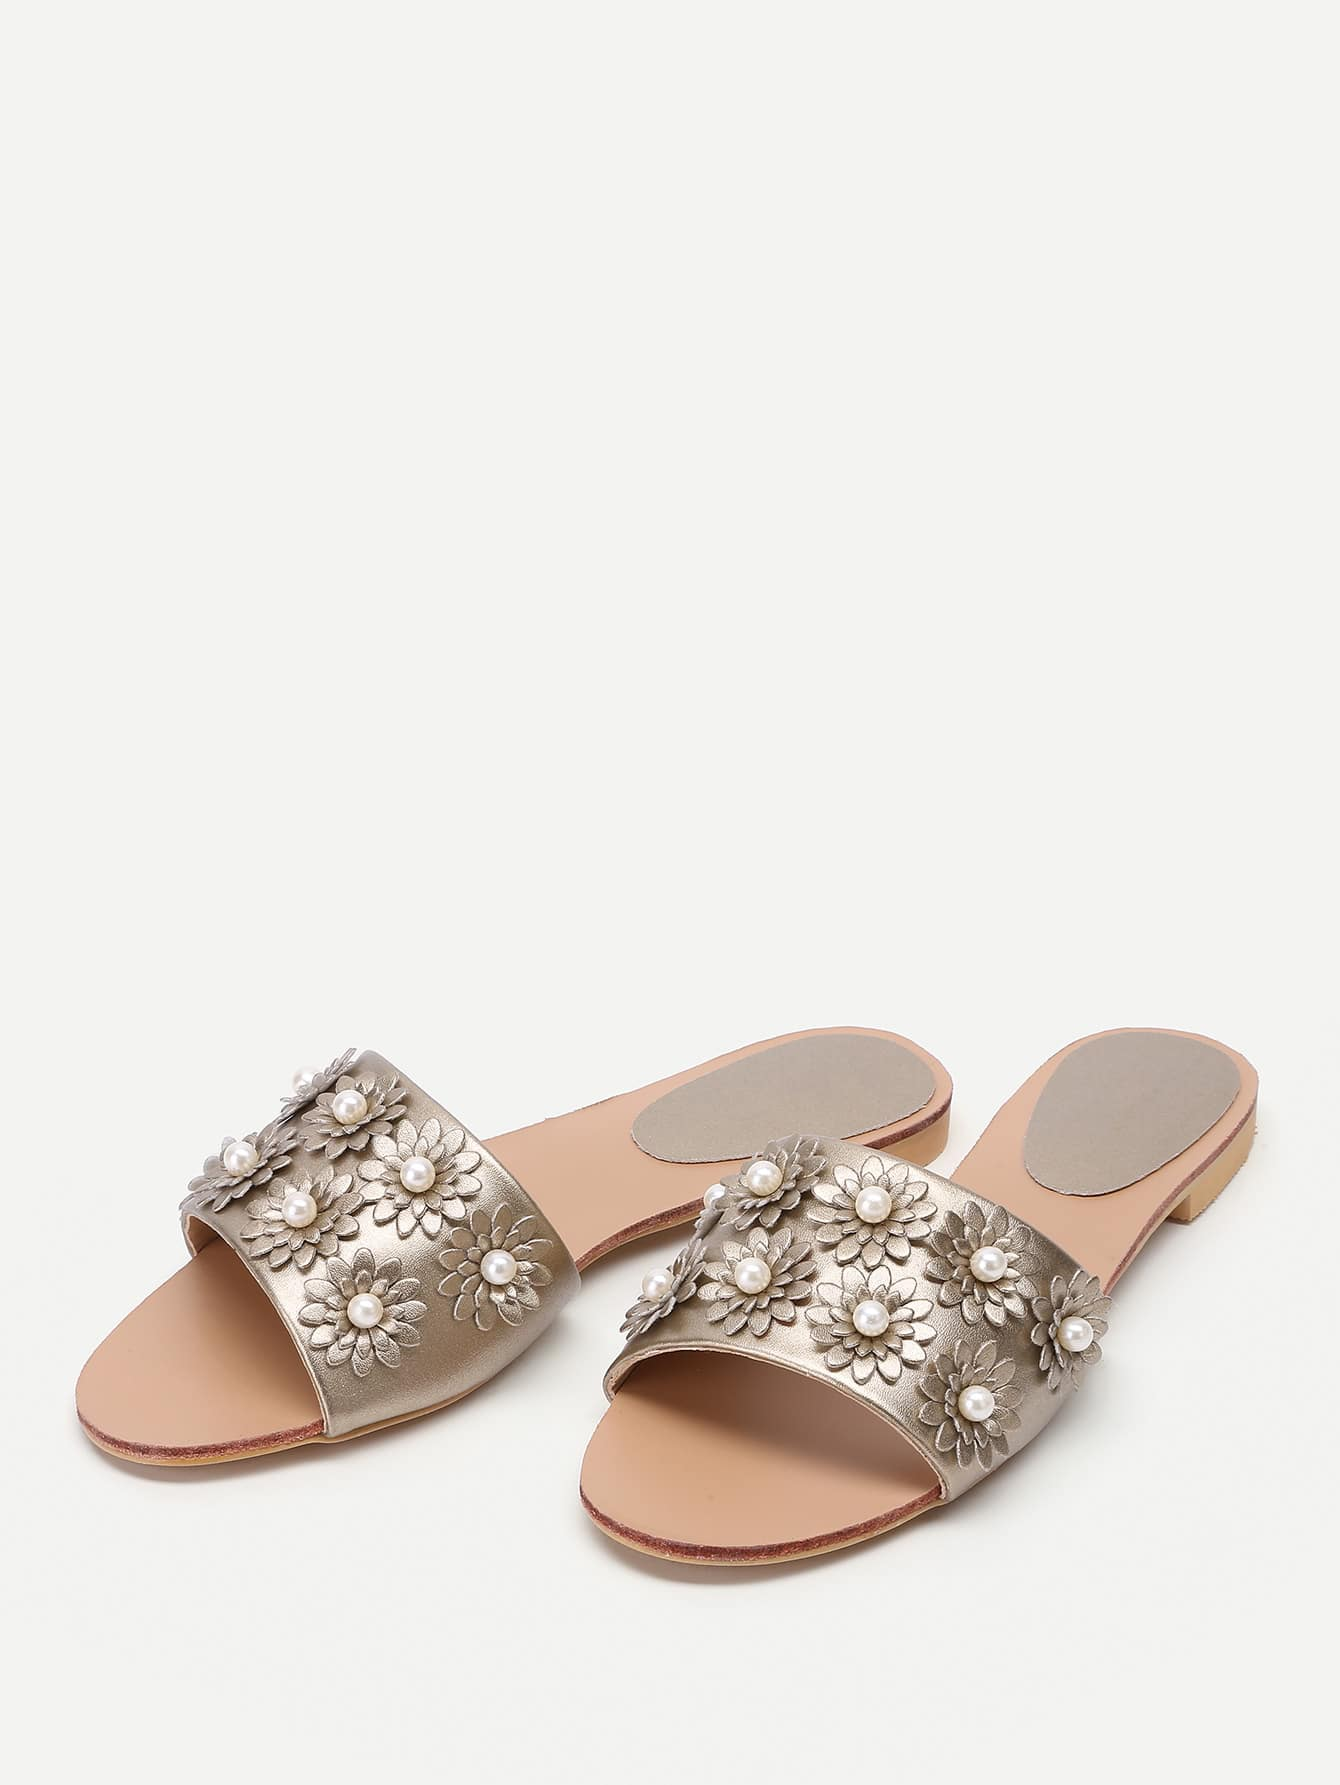 Wedding Flip Flops Flip and flop down the aisle in the most comfy shoes known to woman with our exceptional selection of wedding flip-flops. From getting ready to saying